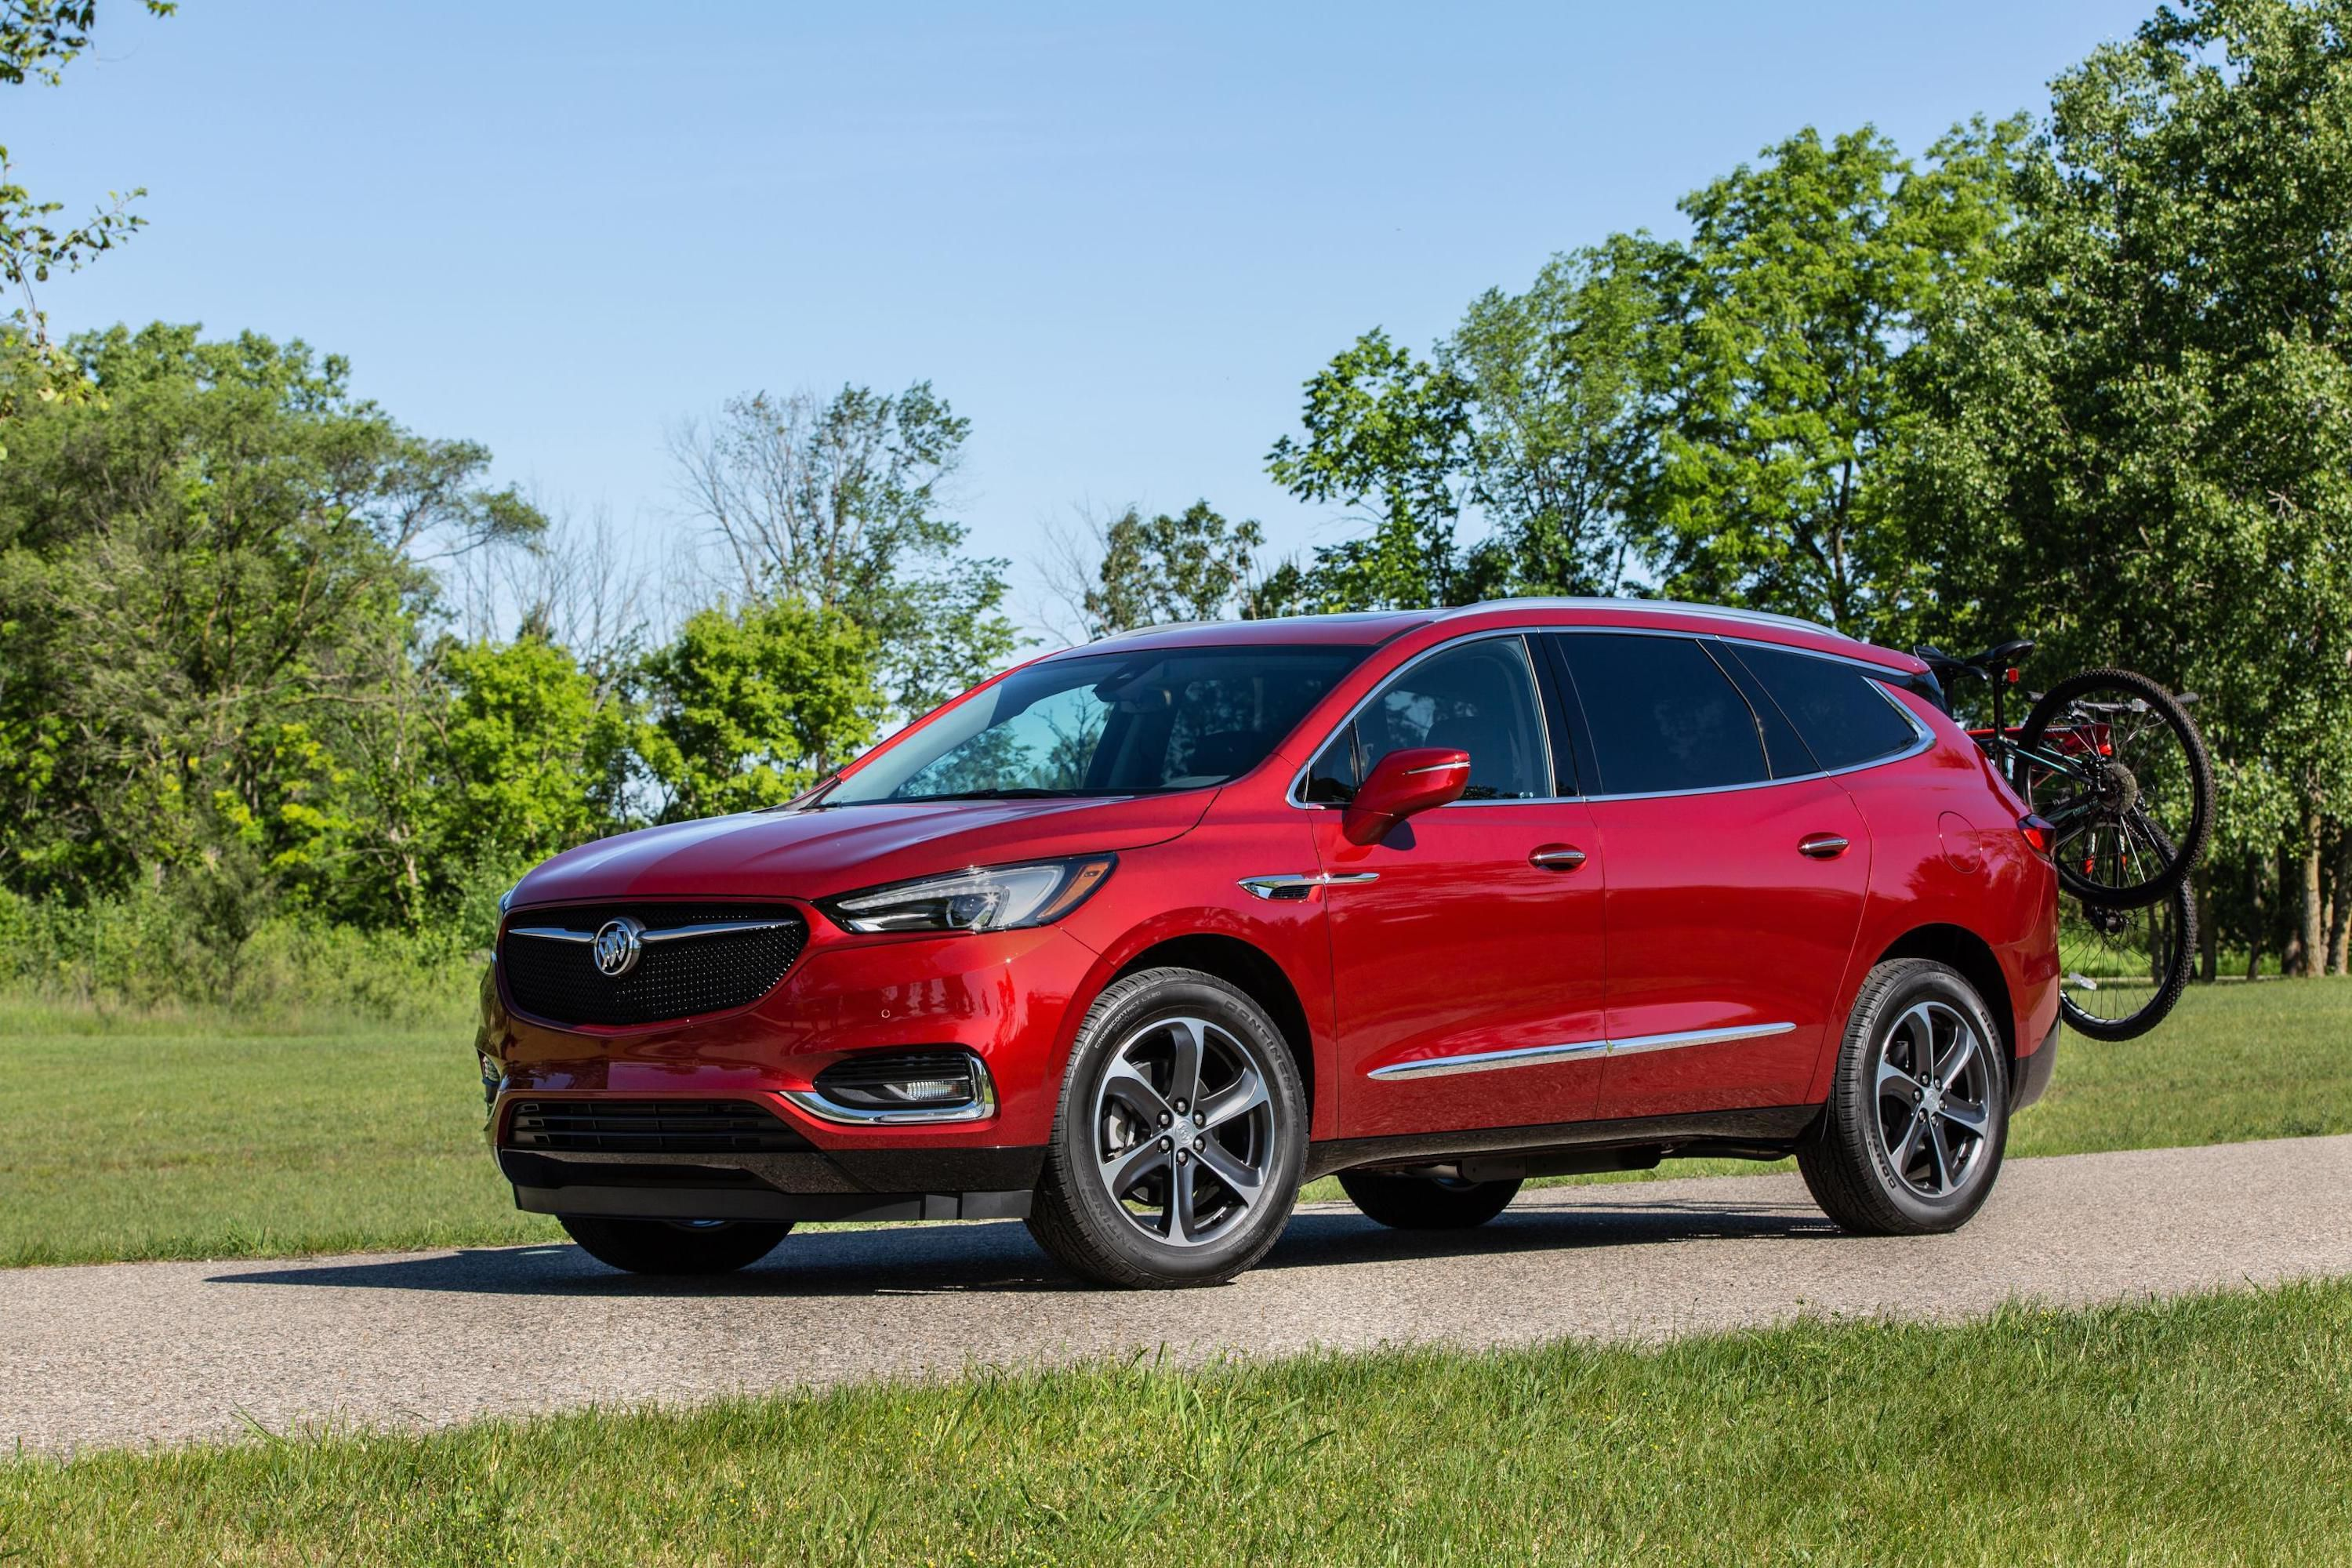 57 Concept of New Buick Suv For 2020 Release Date with New Buick Suv For 2020